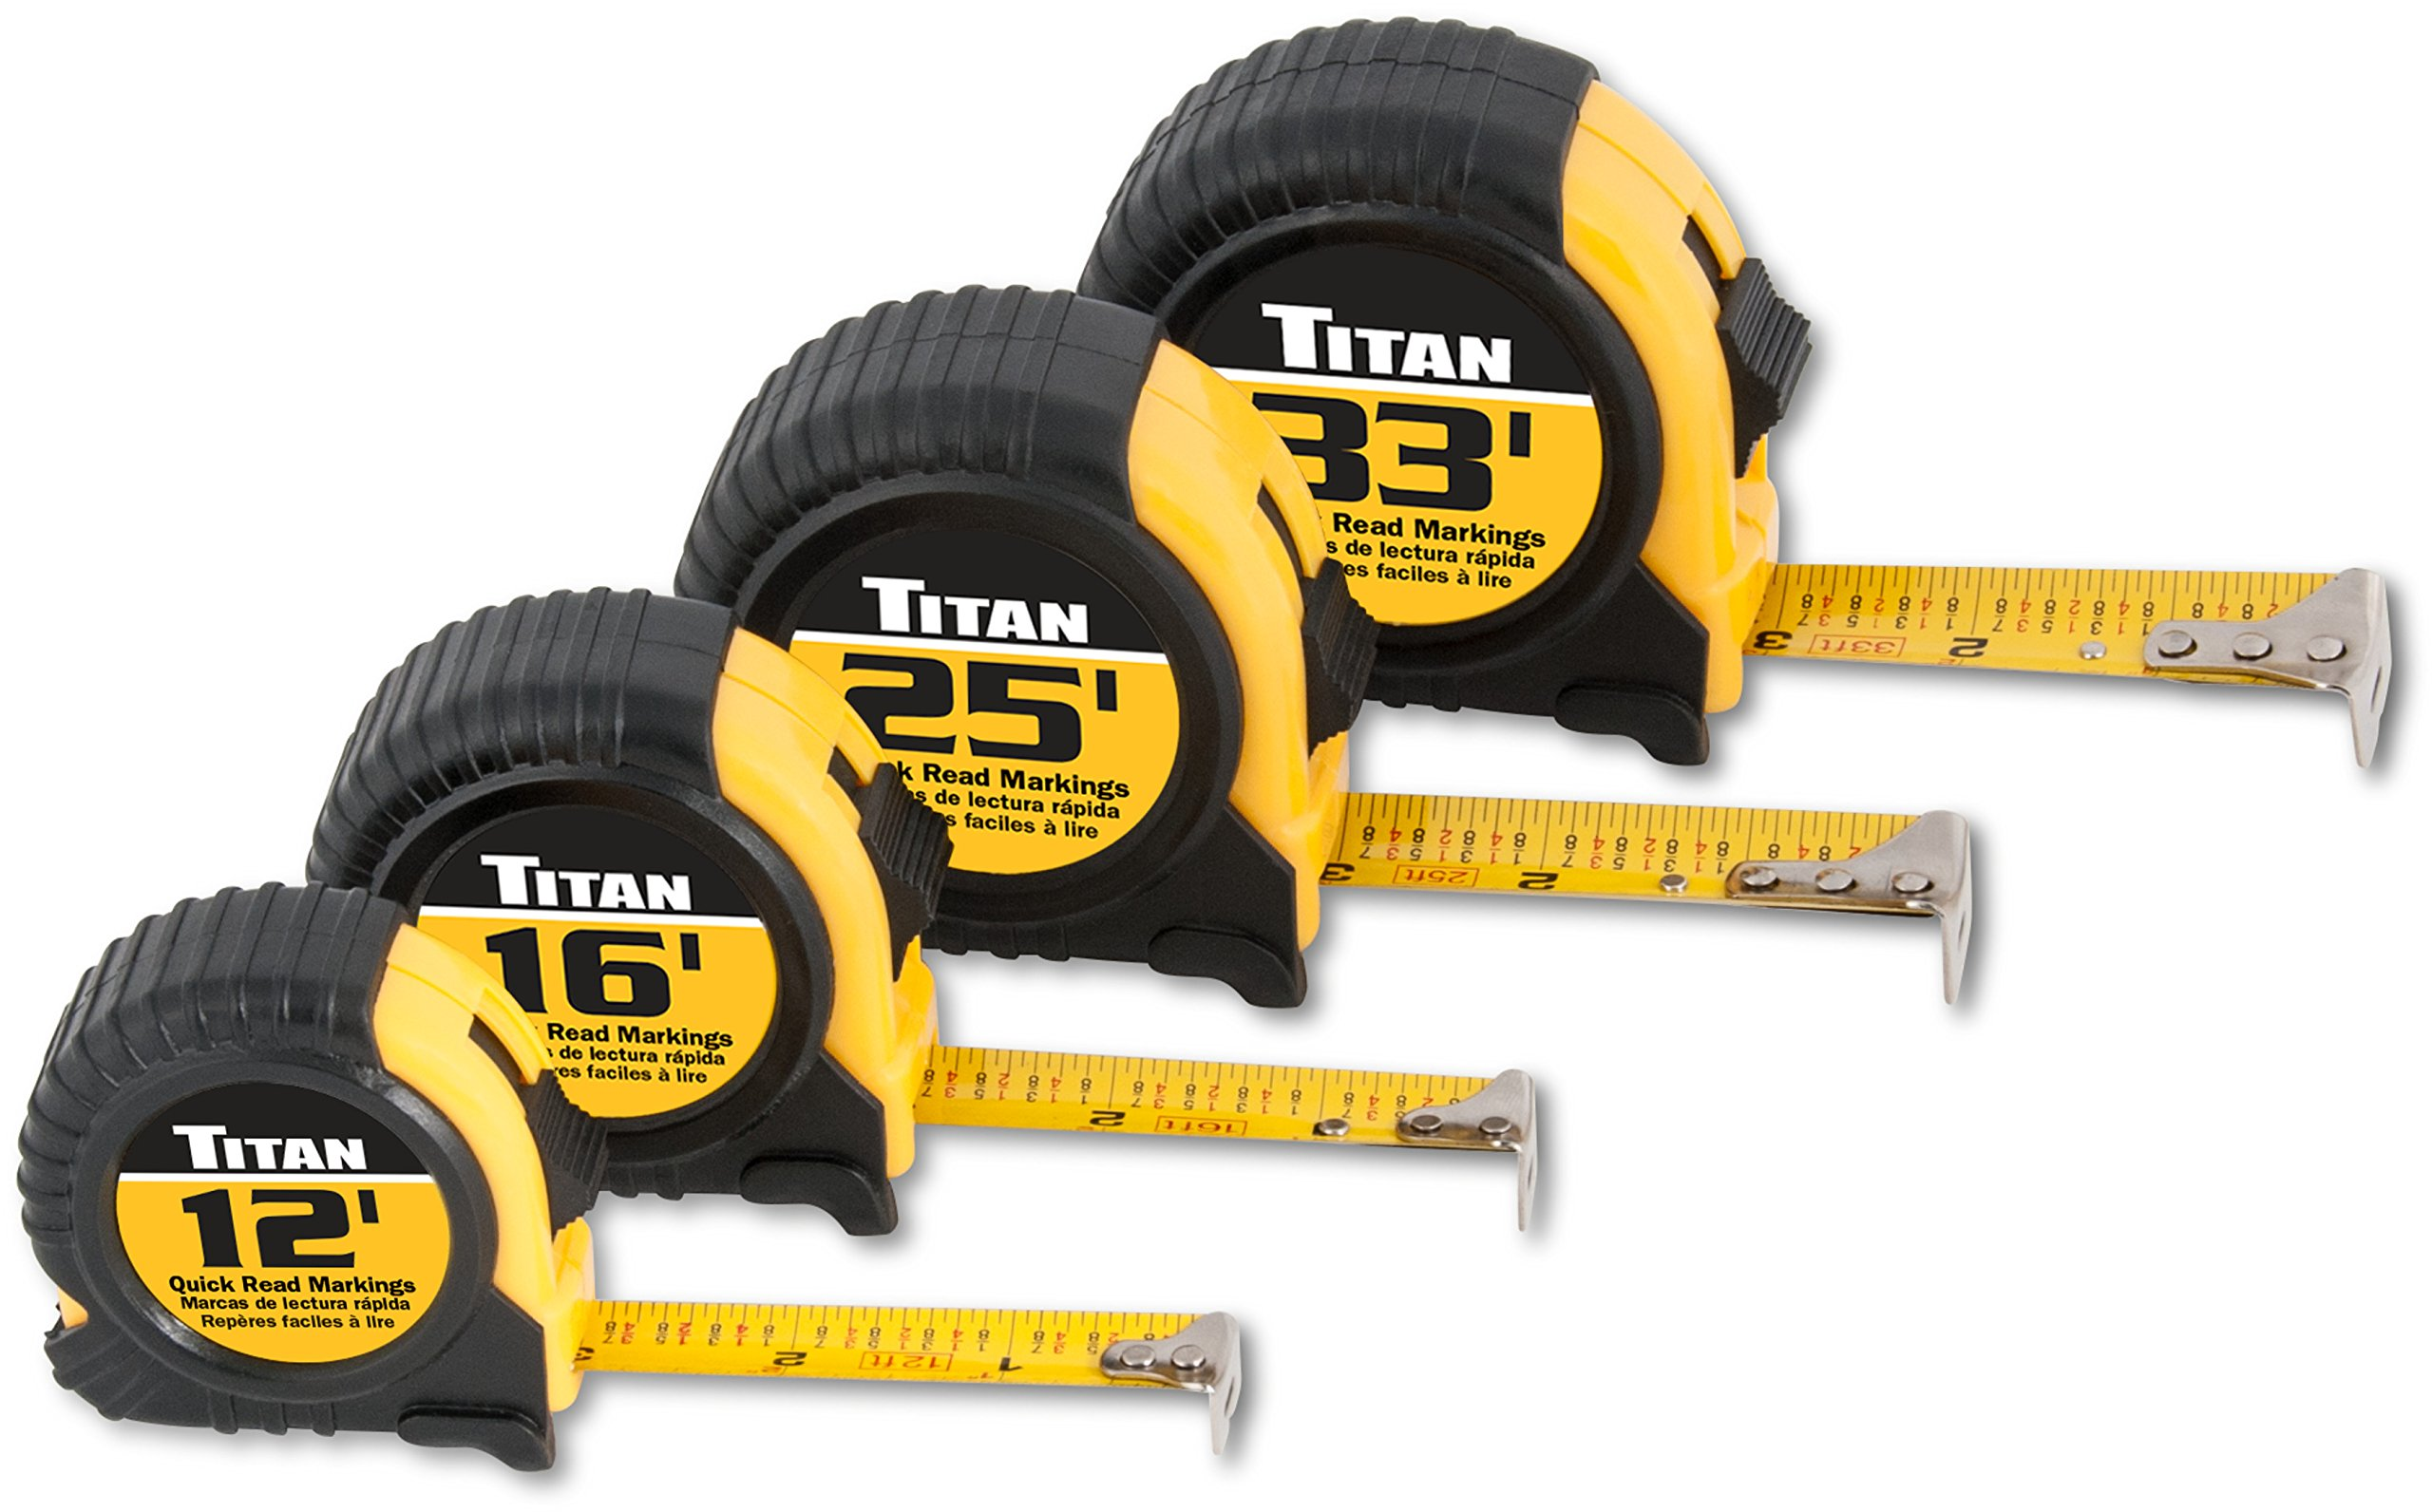 Titan Tools 10902 4-Piece Tape Measure Set (12', 16', 25' and 33') by TITAN